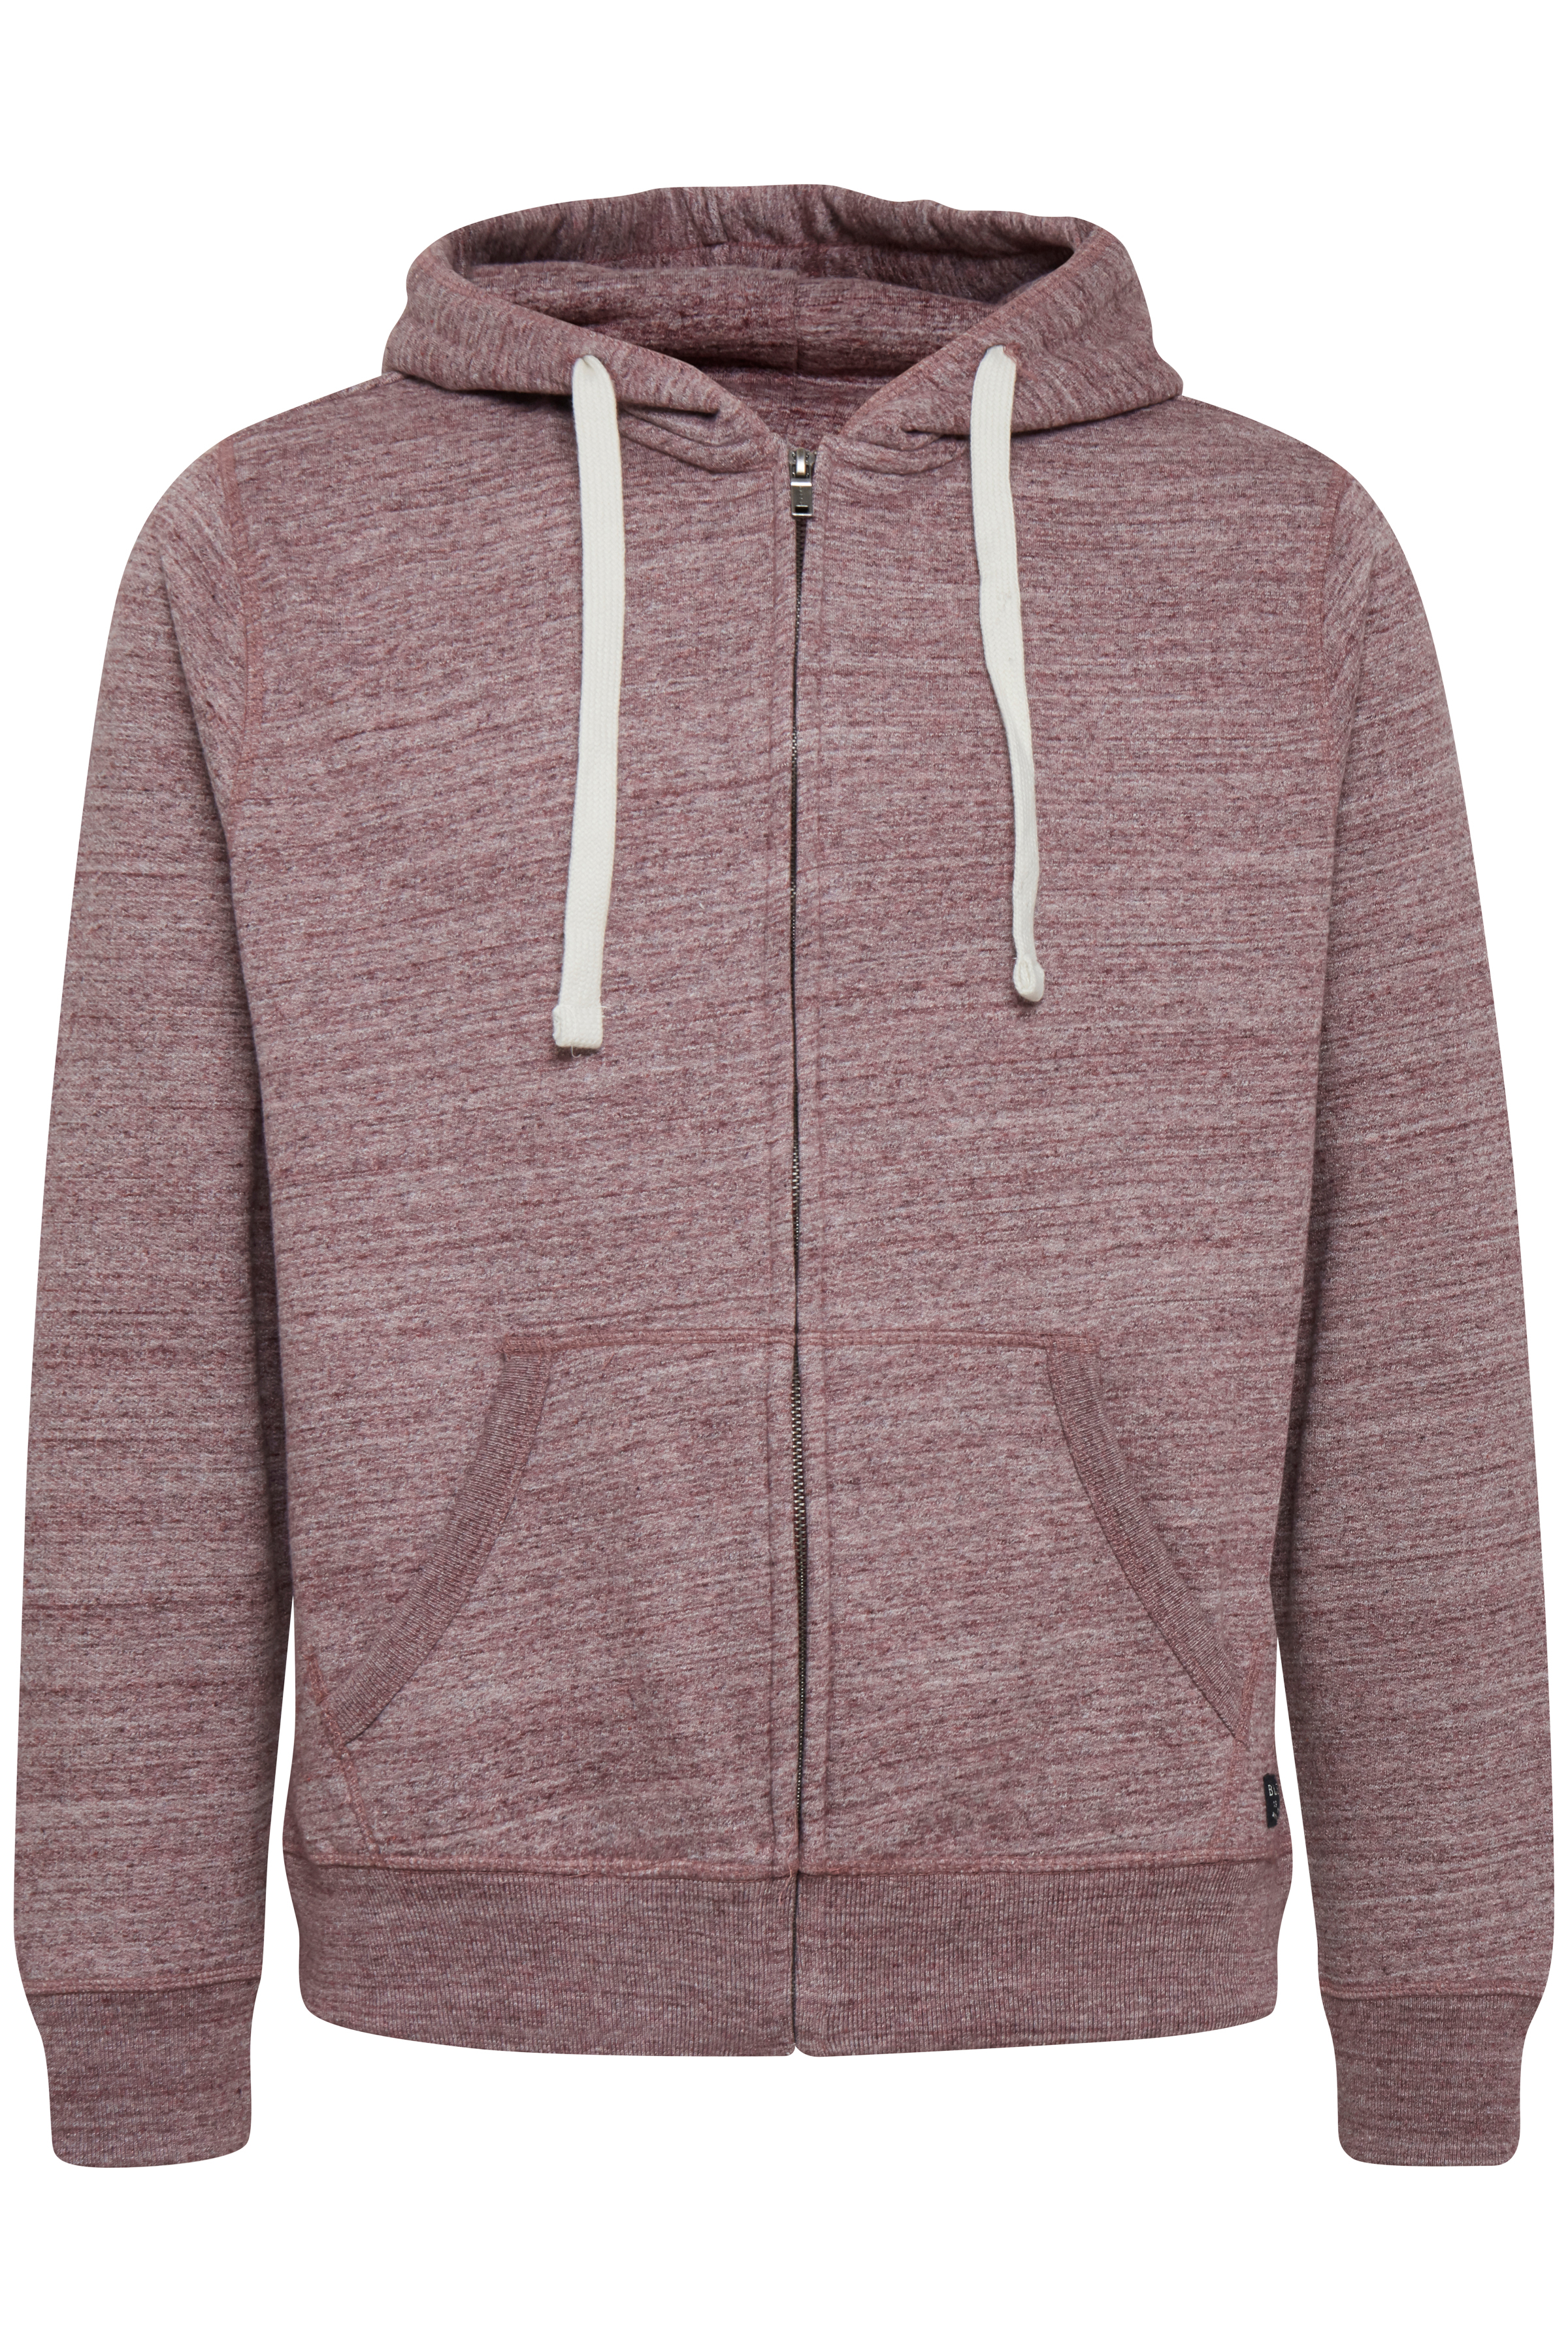 Blend He Herre Smart sweatshirt  - Wine red